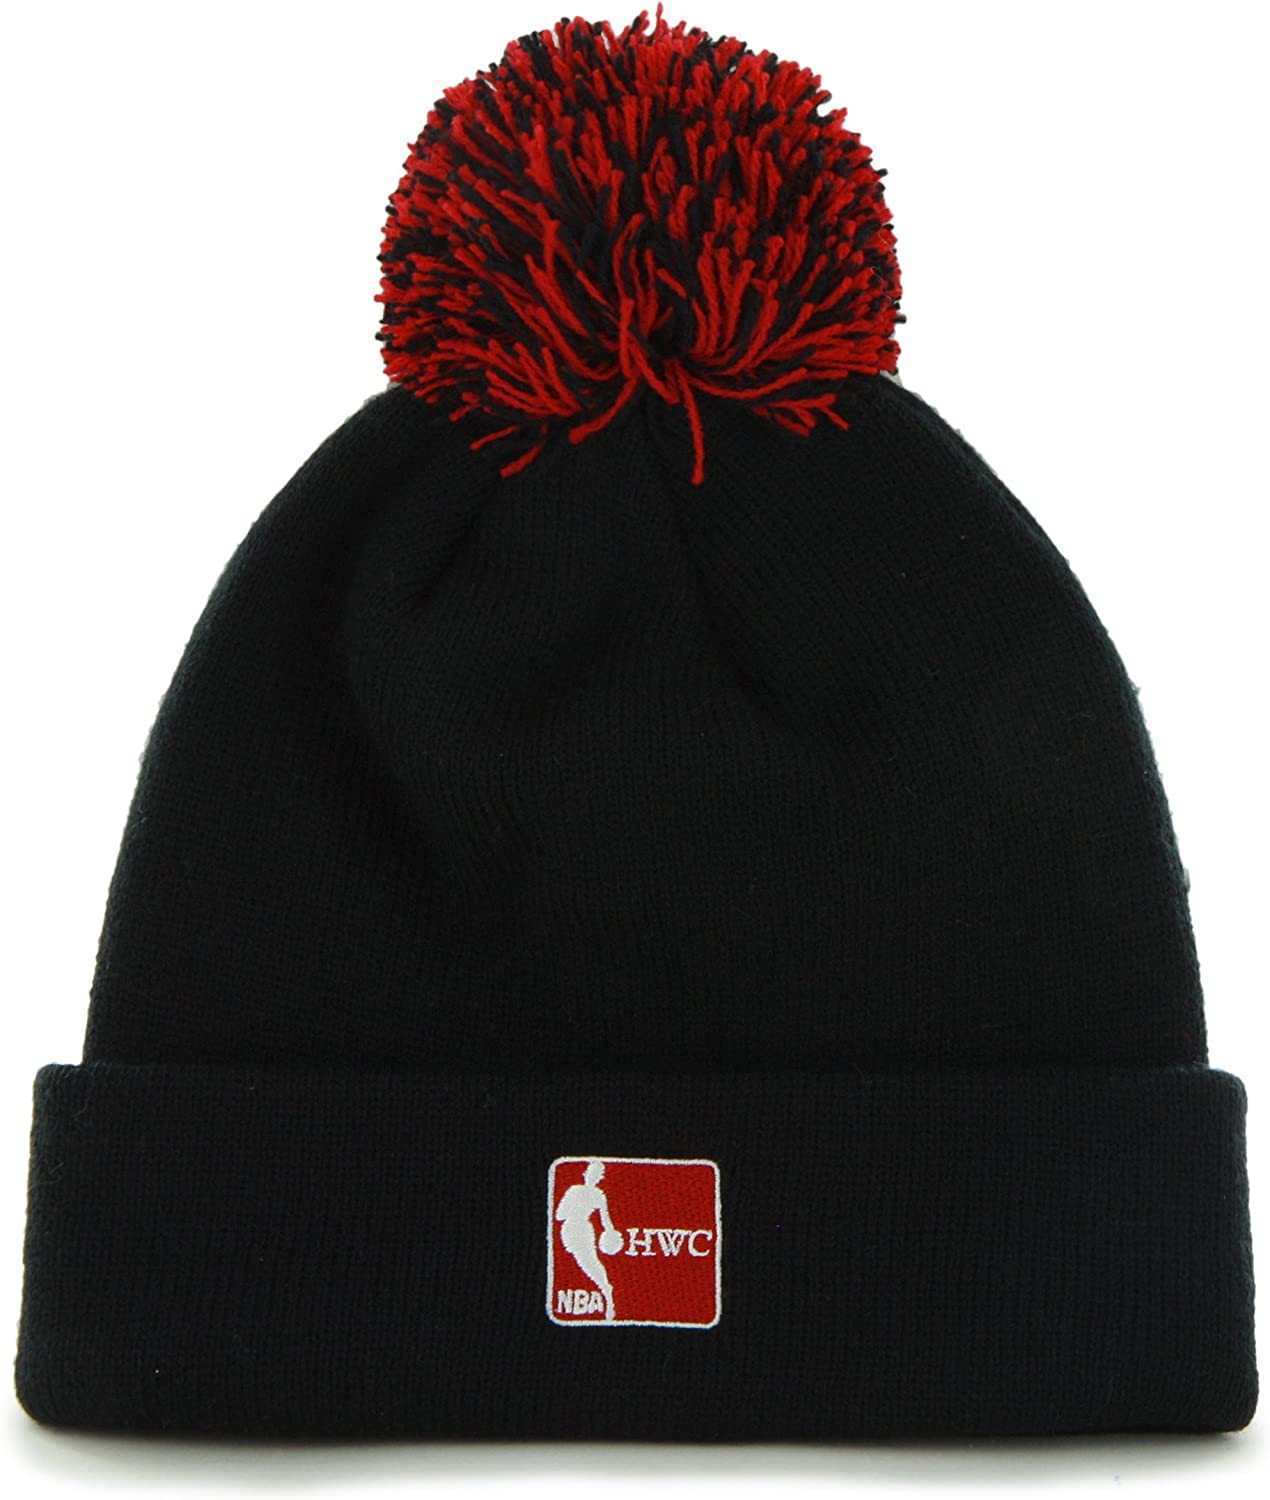 Chicago Winter Hat Chicago Pride Hat Cuffed Beanie for Winter Chicago Colors Chicago Skull Cap Embroidered Chicago Beanie